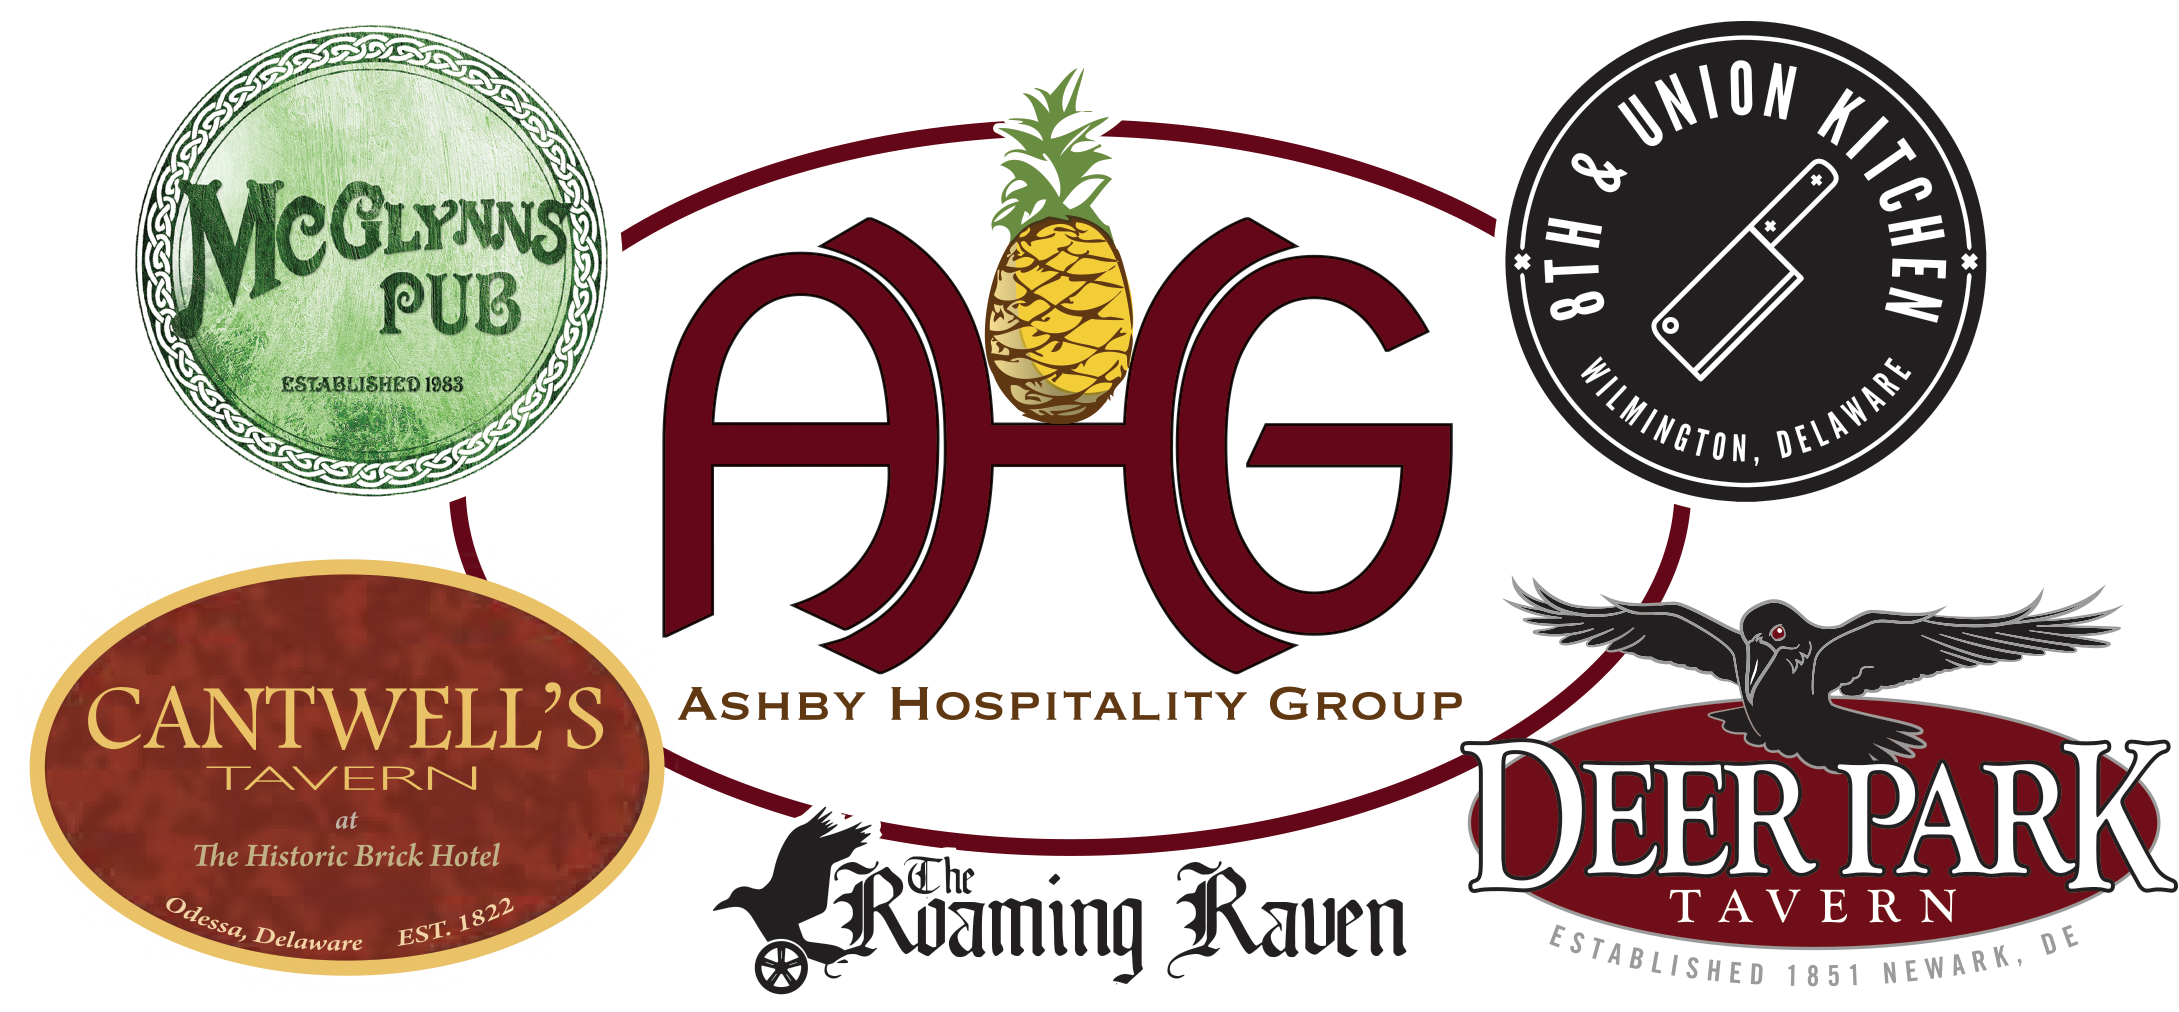 Collage of Ashby Hospitality Logos - Mcglynn's pub, Cantwell's Tavern, The Roaming Raven, Deer Park Tavern, 8th and Union Kitchen Wilmington, Delaware.